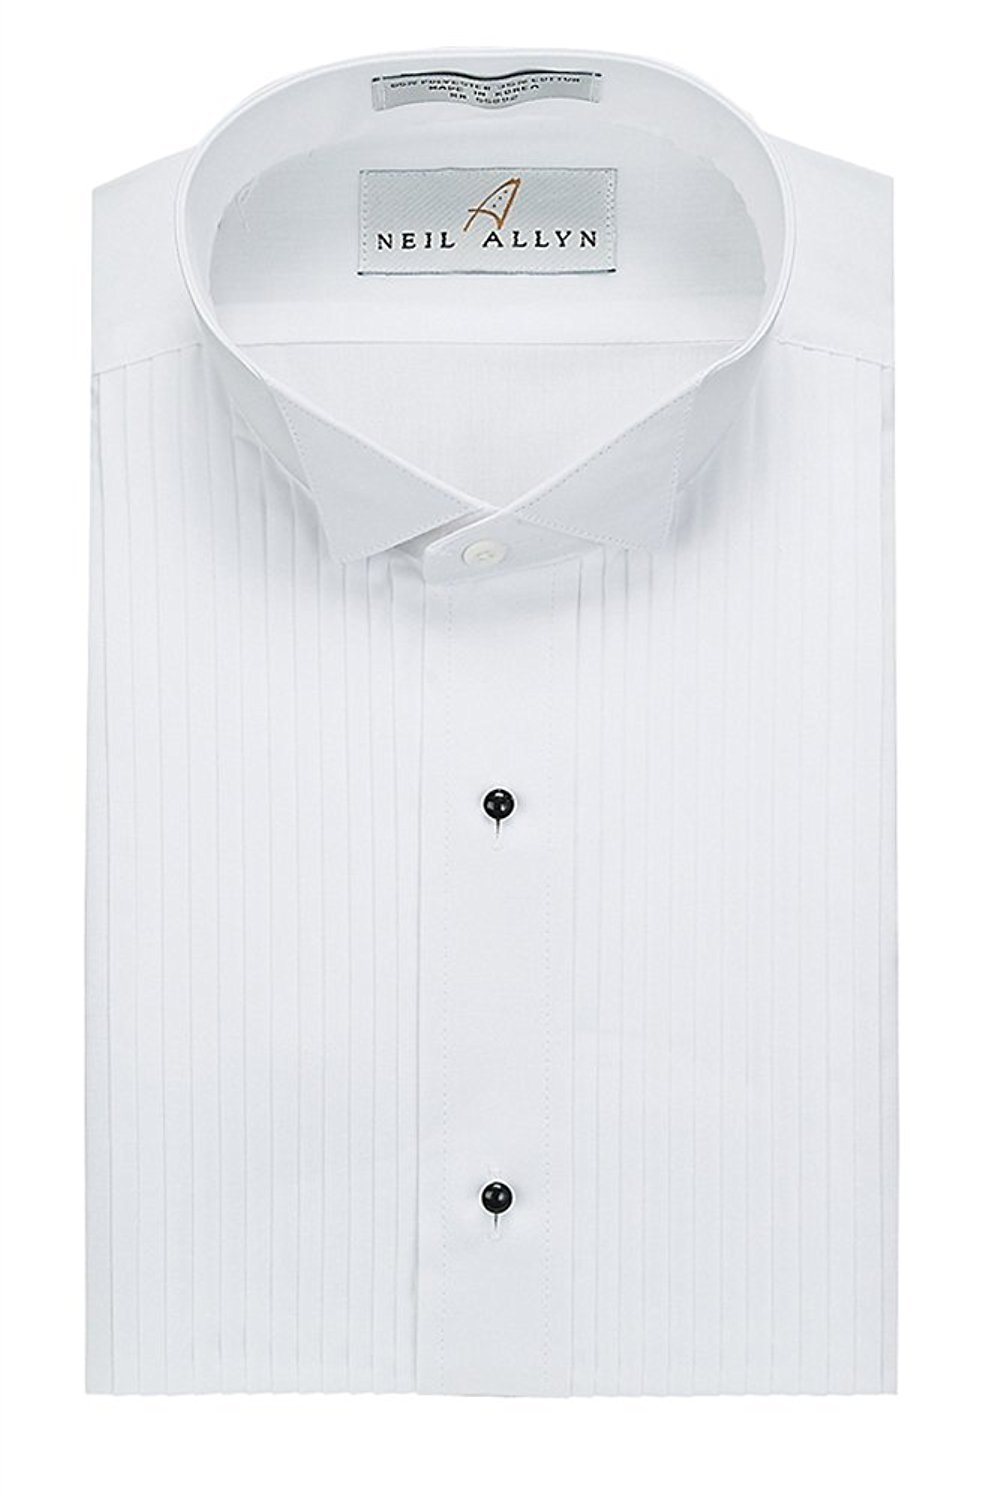 Neil Allyn Slim Fit Tuxedo Shirt - 100% Cotton Wing Collar with French Cuffs,White,Large (16.5) Neck 34/35 Sleeve